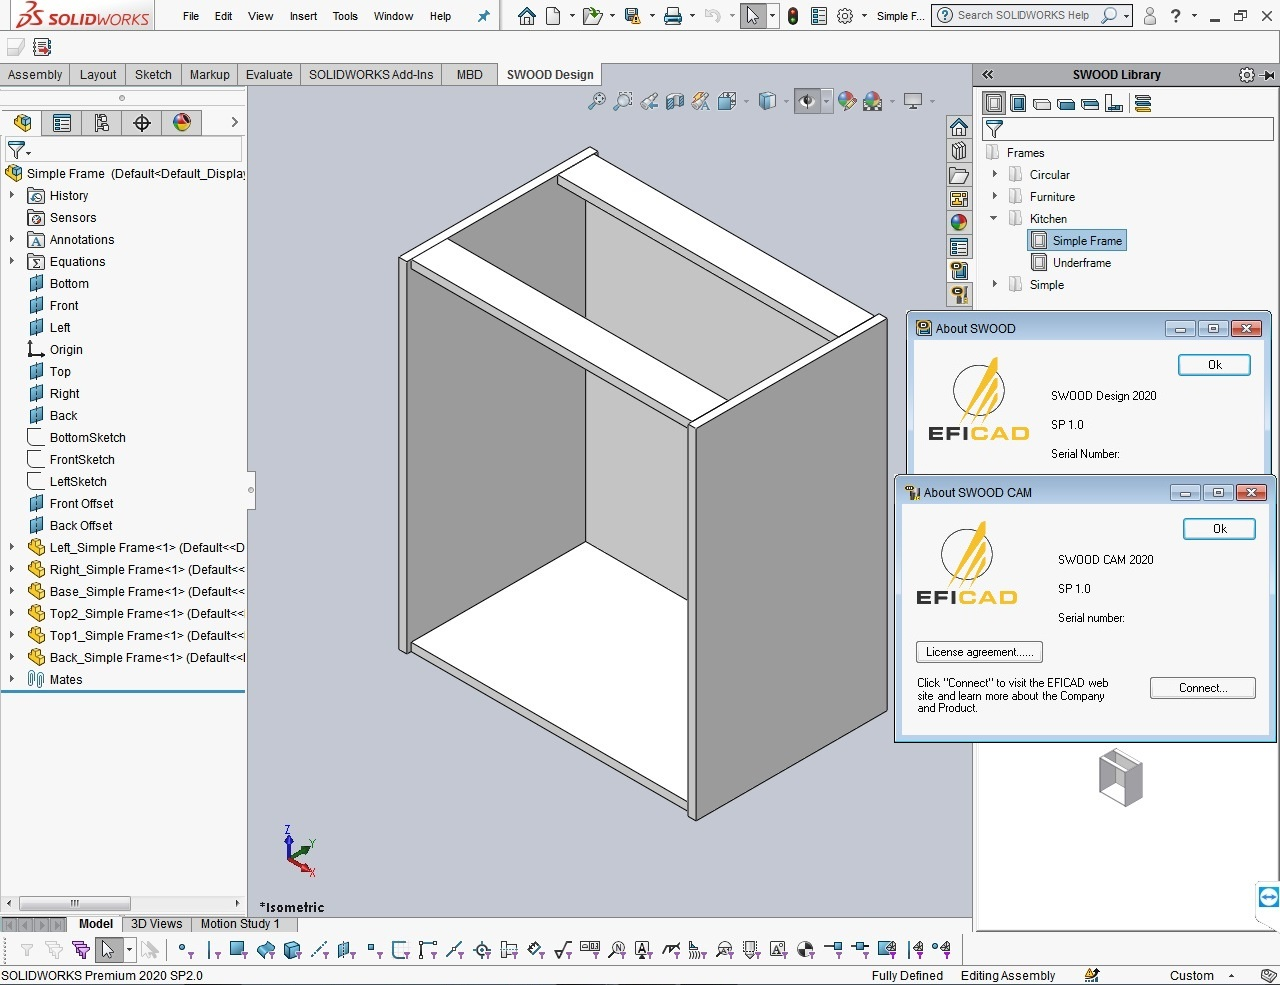 Working with EFICAD SWOOD 2020 SP1.0 for SolidWorks 2010-2020 full